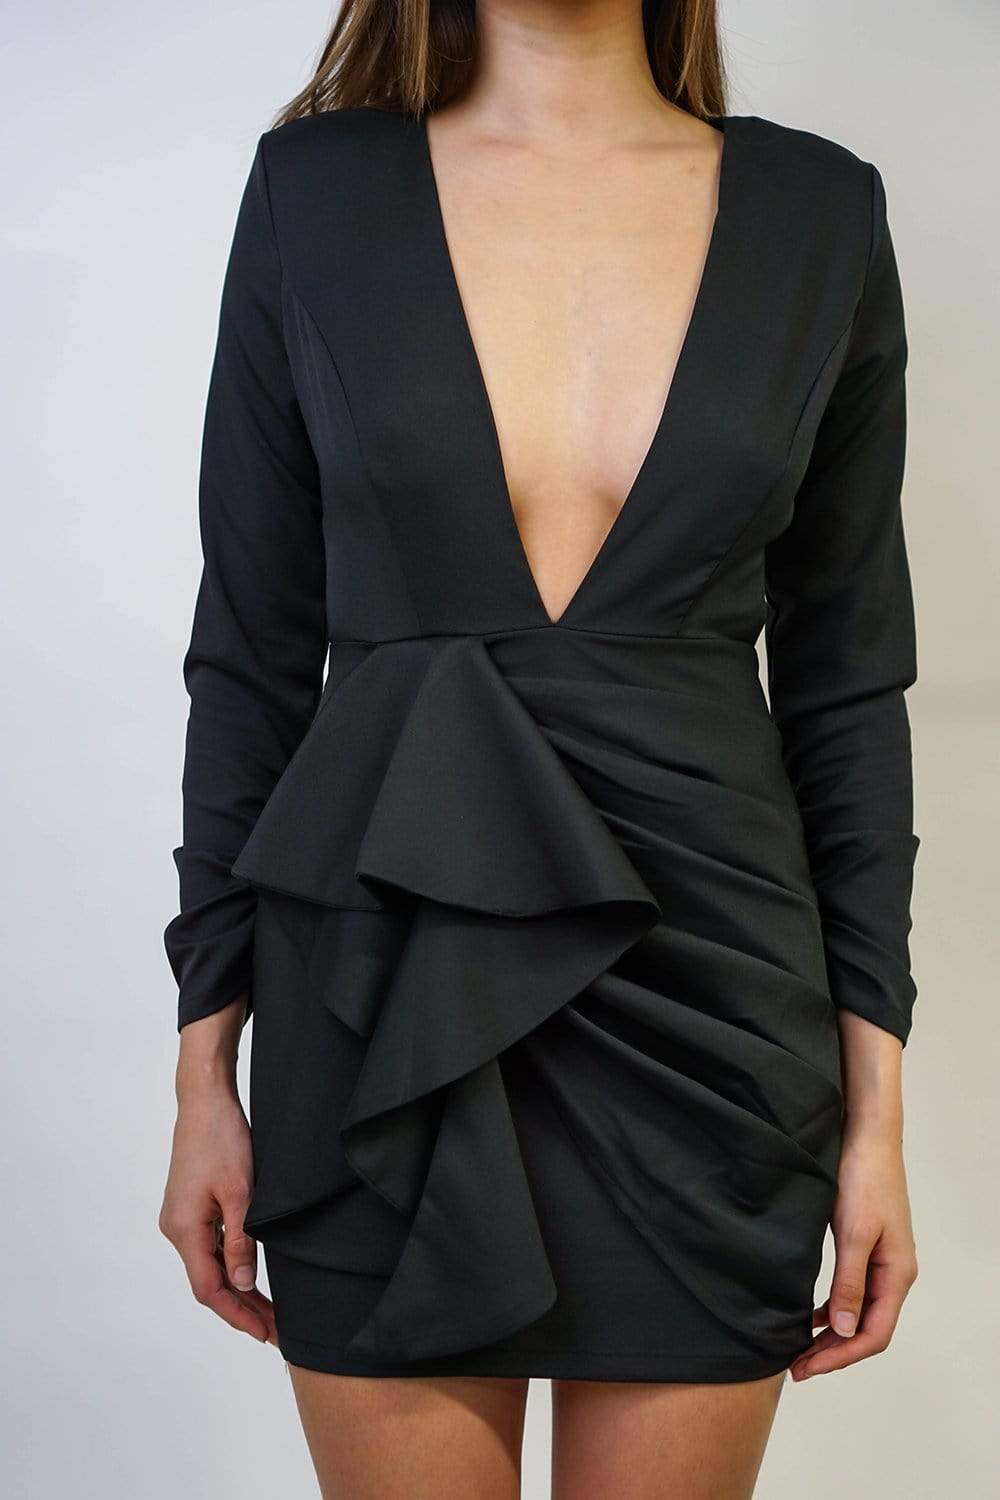 DRESS Deep V Neck Fitted Dress - Chloe Dao